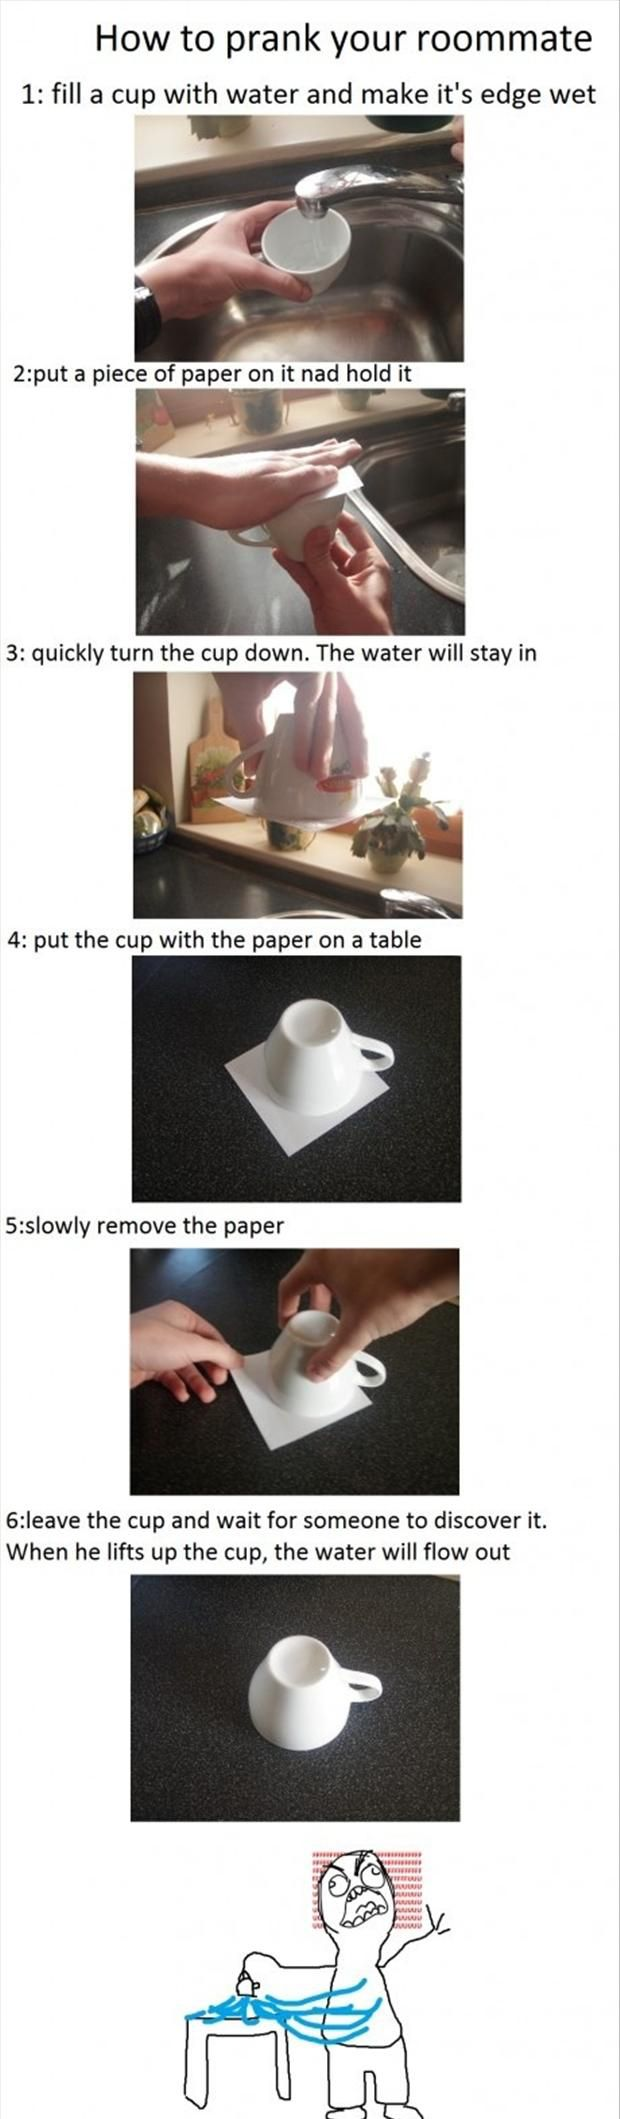 Latest Funny Pranks  How To Prank A Mate 10